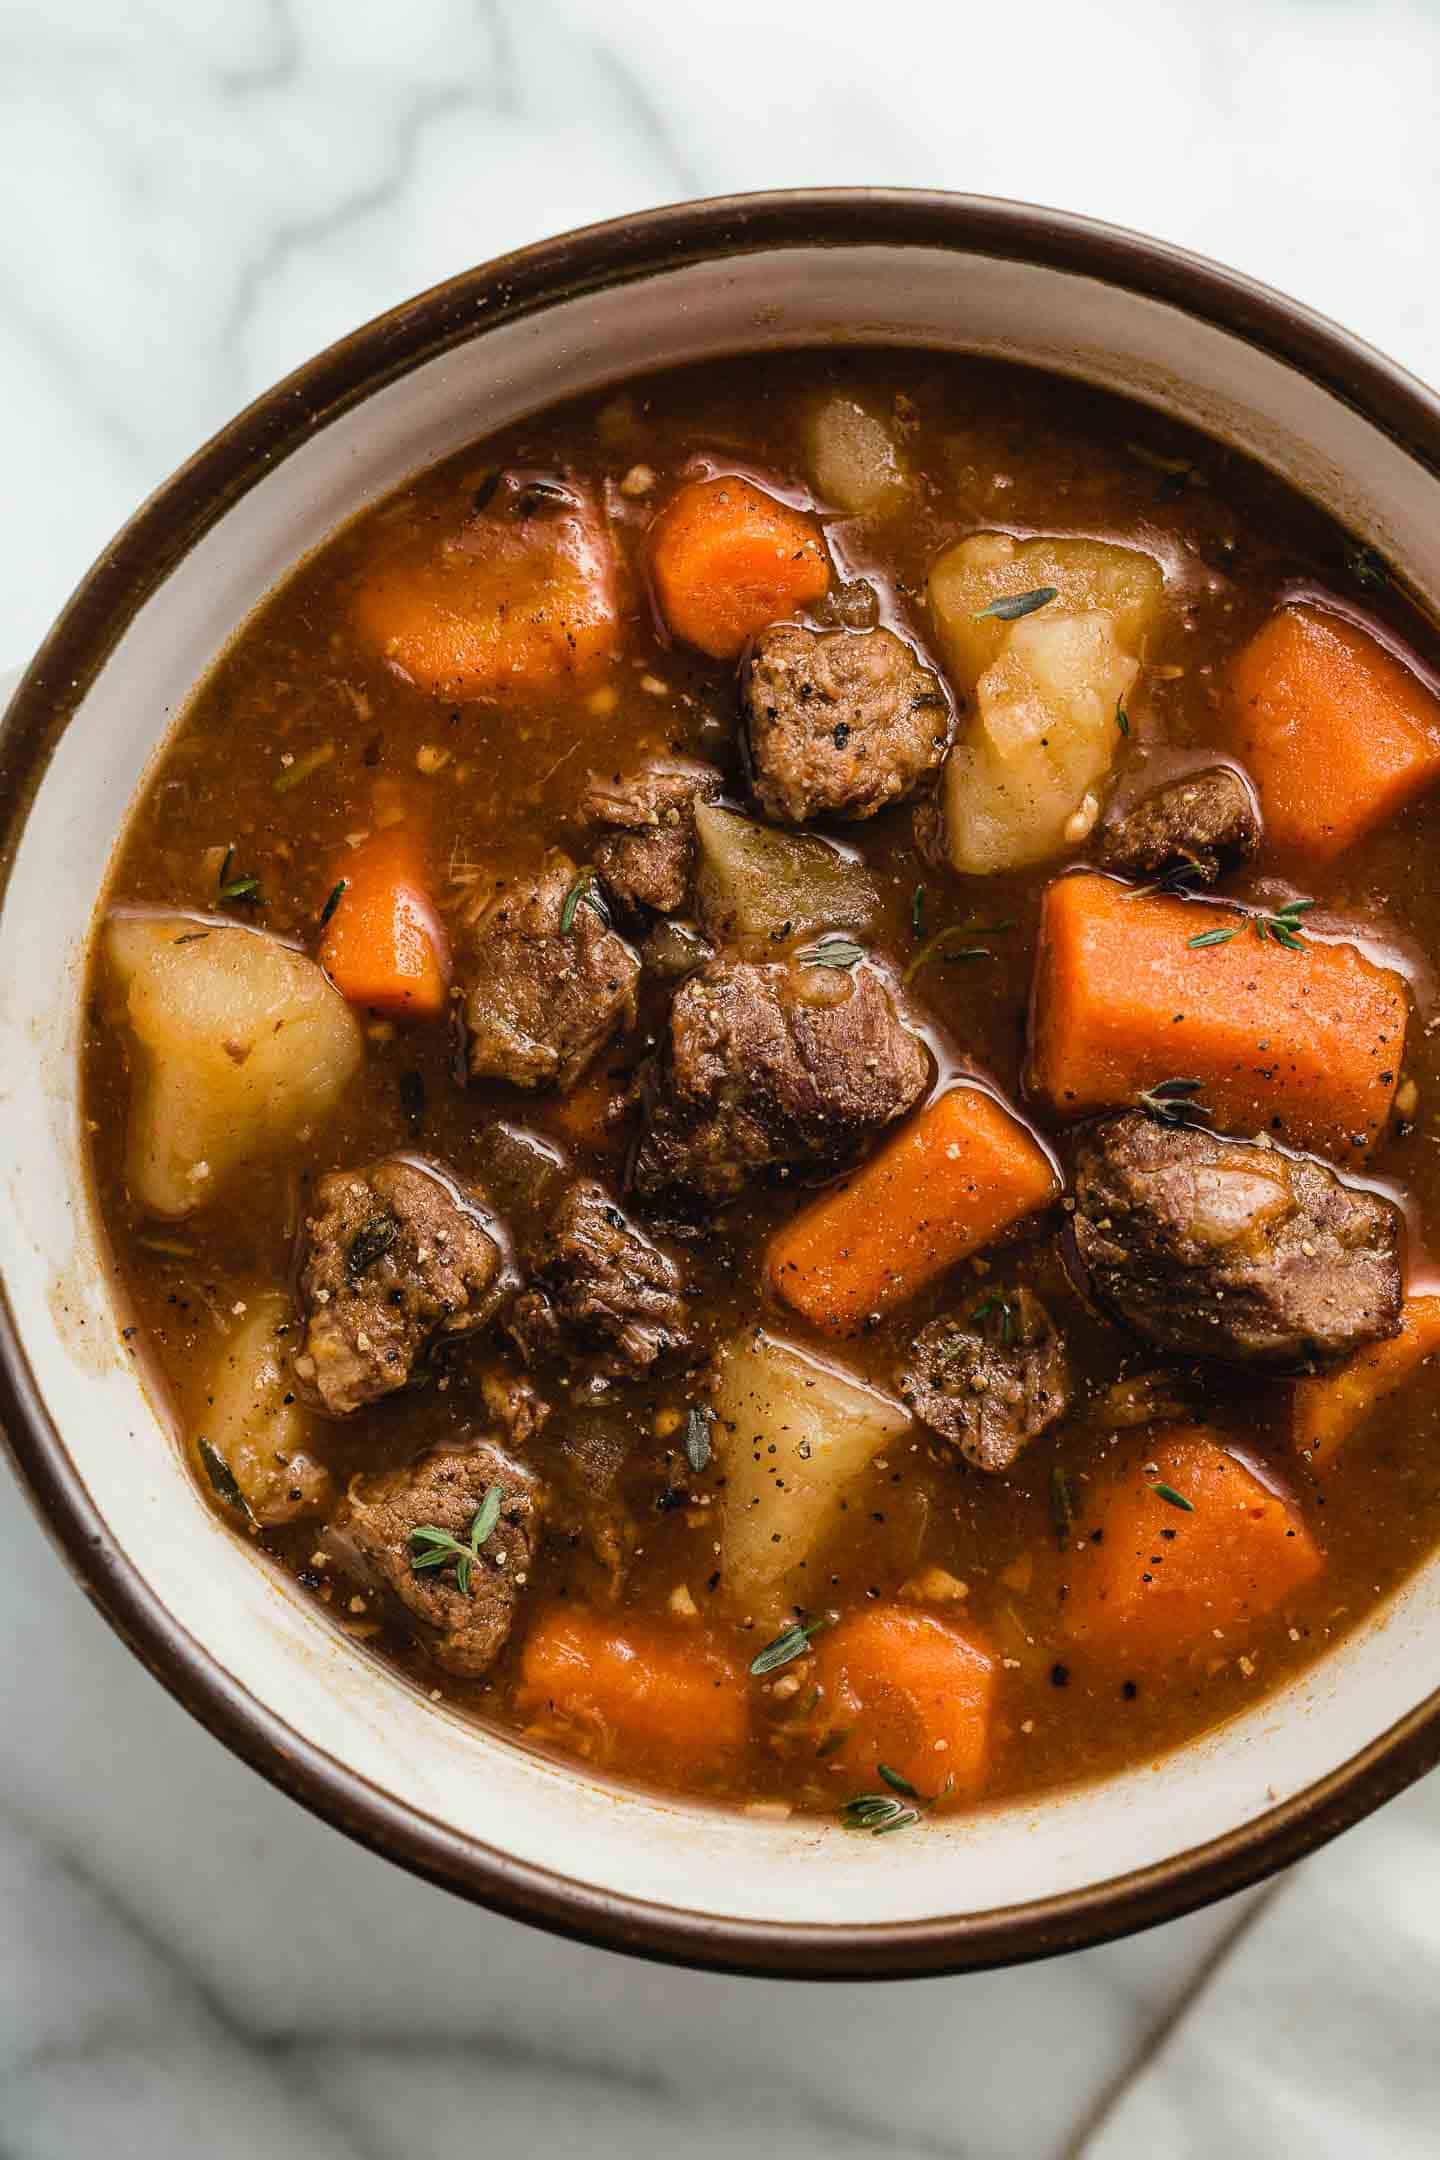 Top view of a bowl of Instant Pot beef stew.